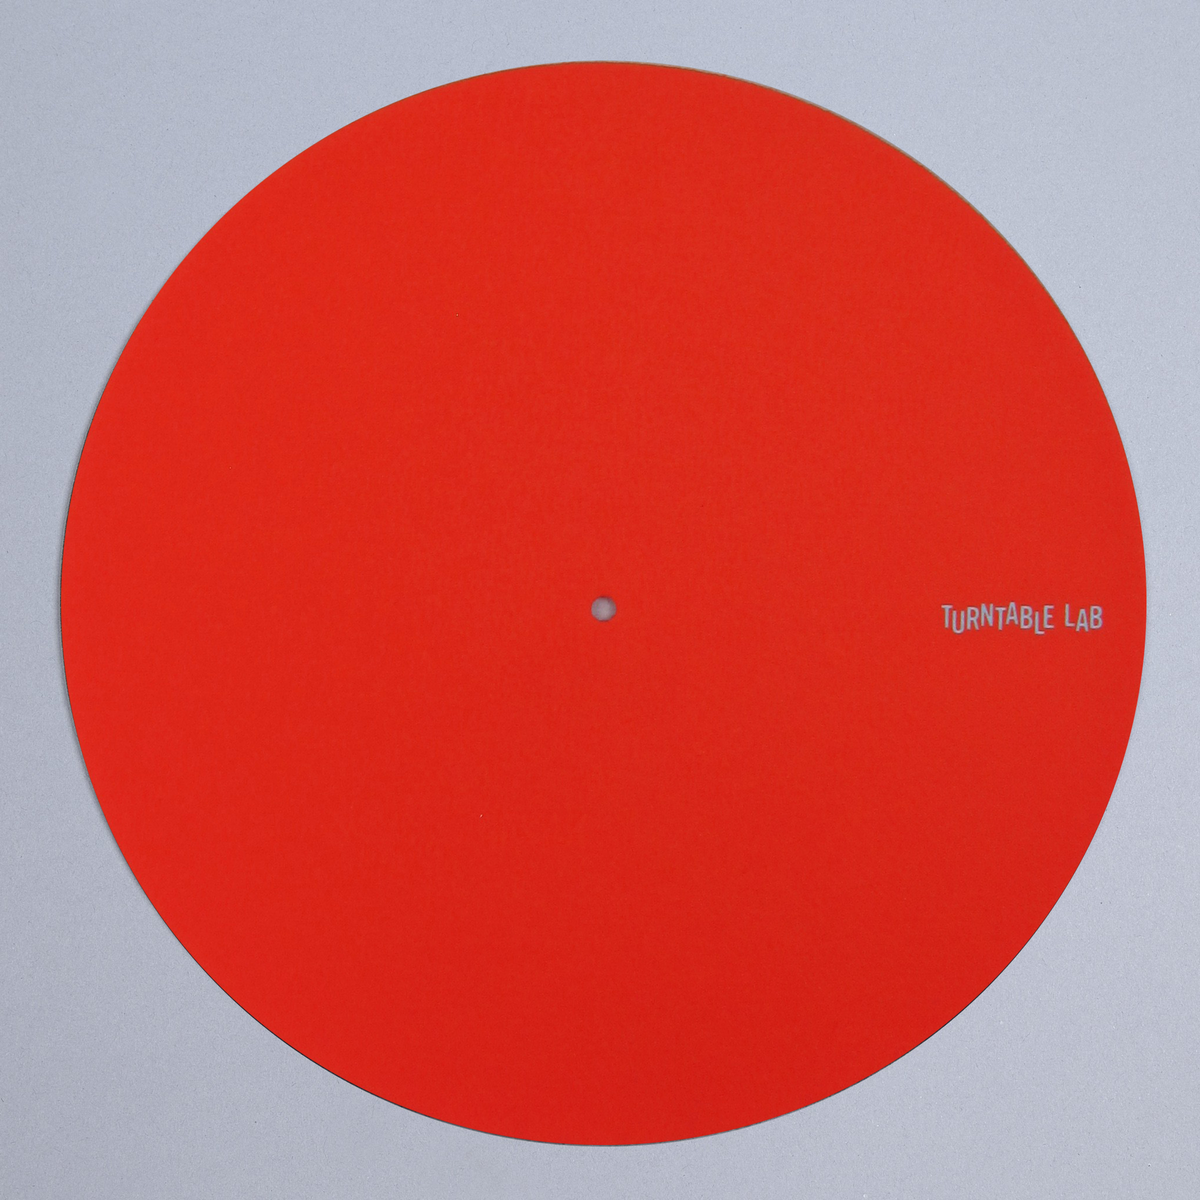 Turntable Lab: Pro Thin Slipmat Record Mats (Technics Style) - Red